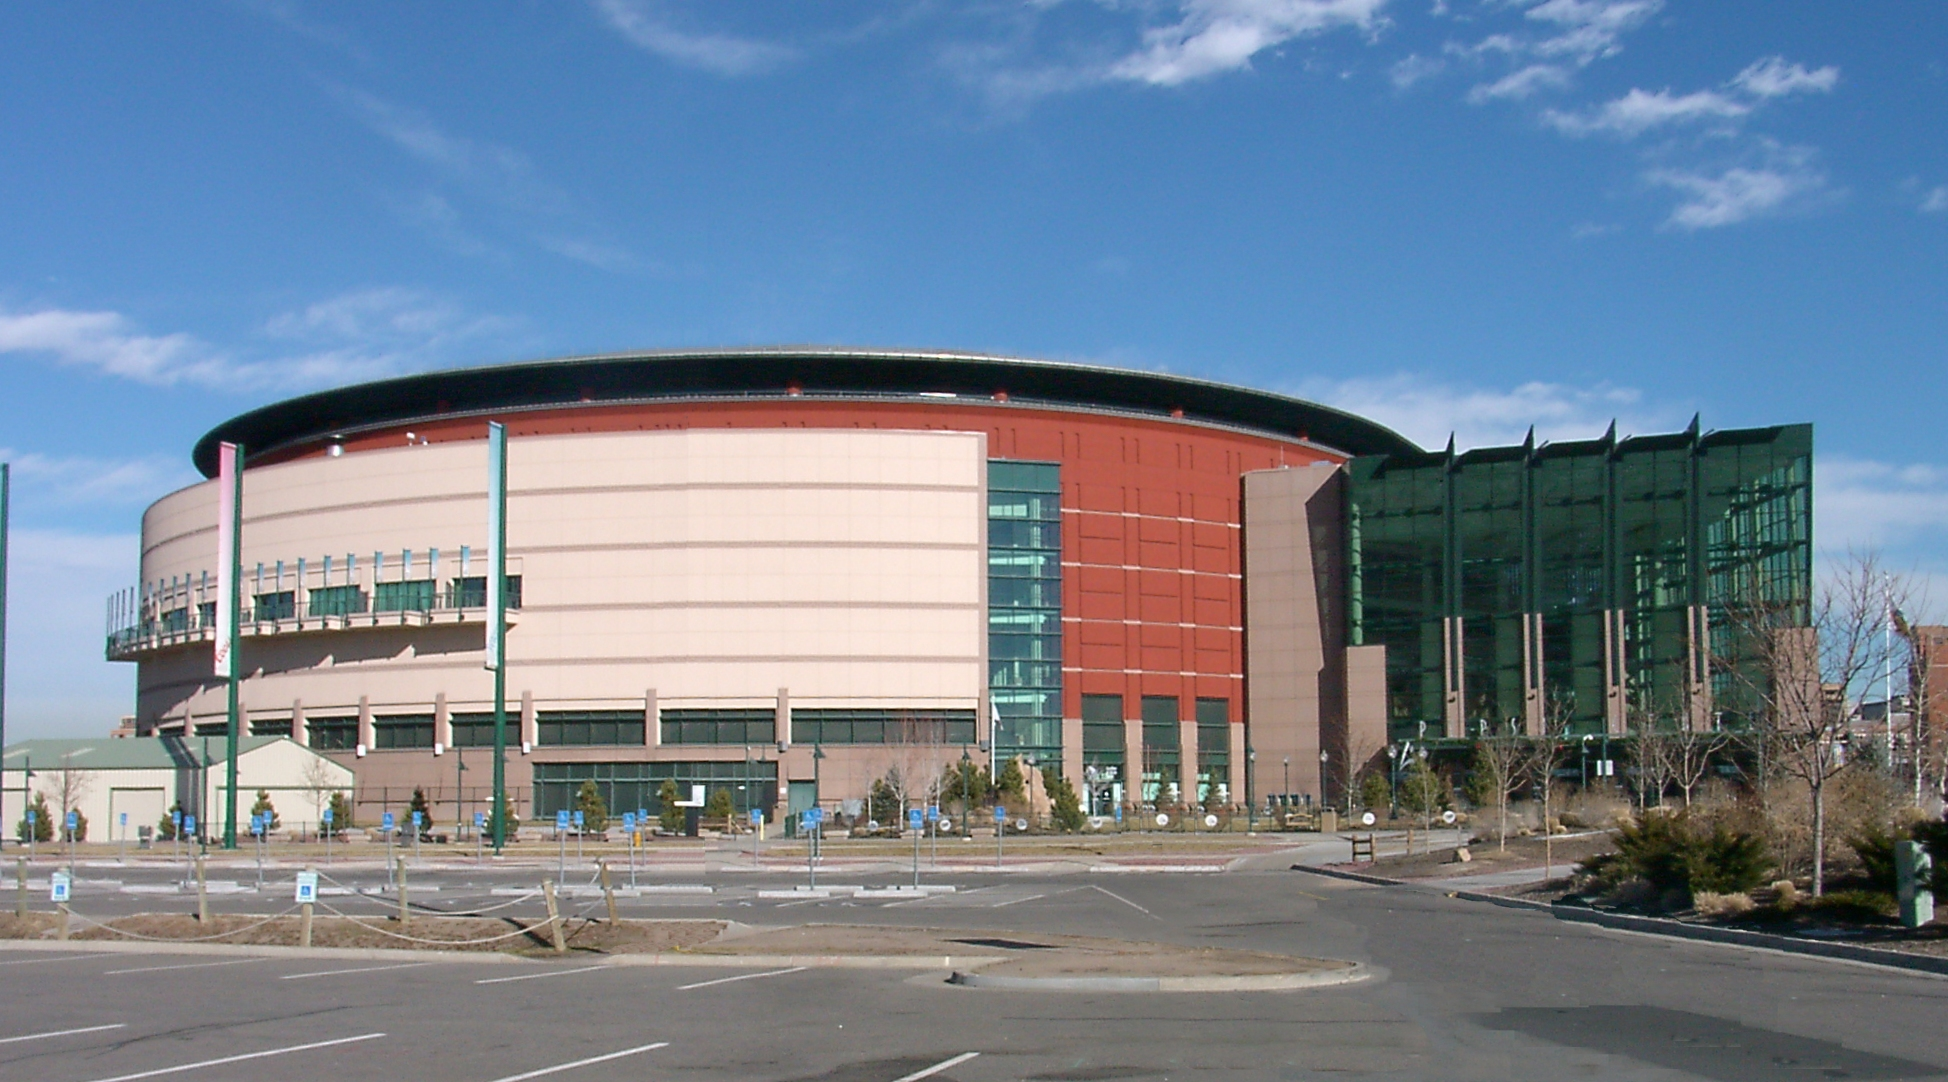 Le Pepsi Center, salle des Denver Nuggets en NBA